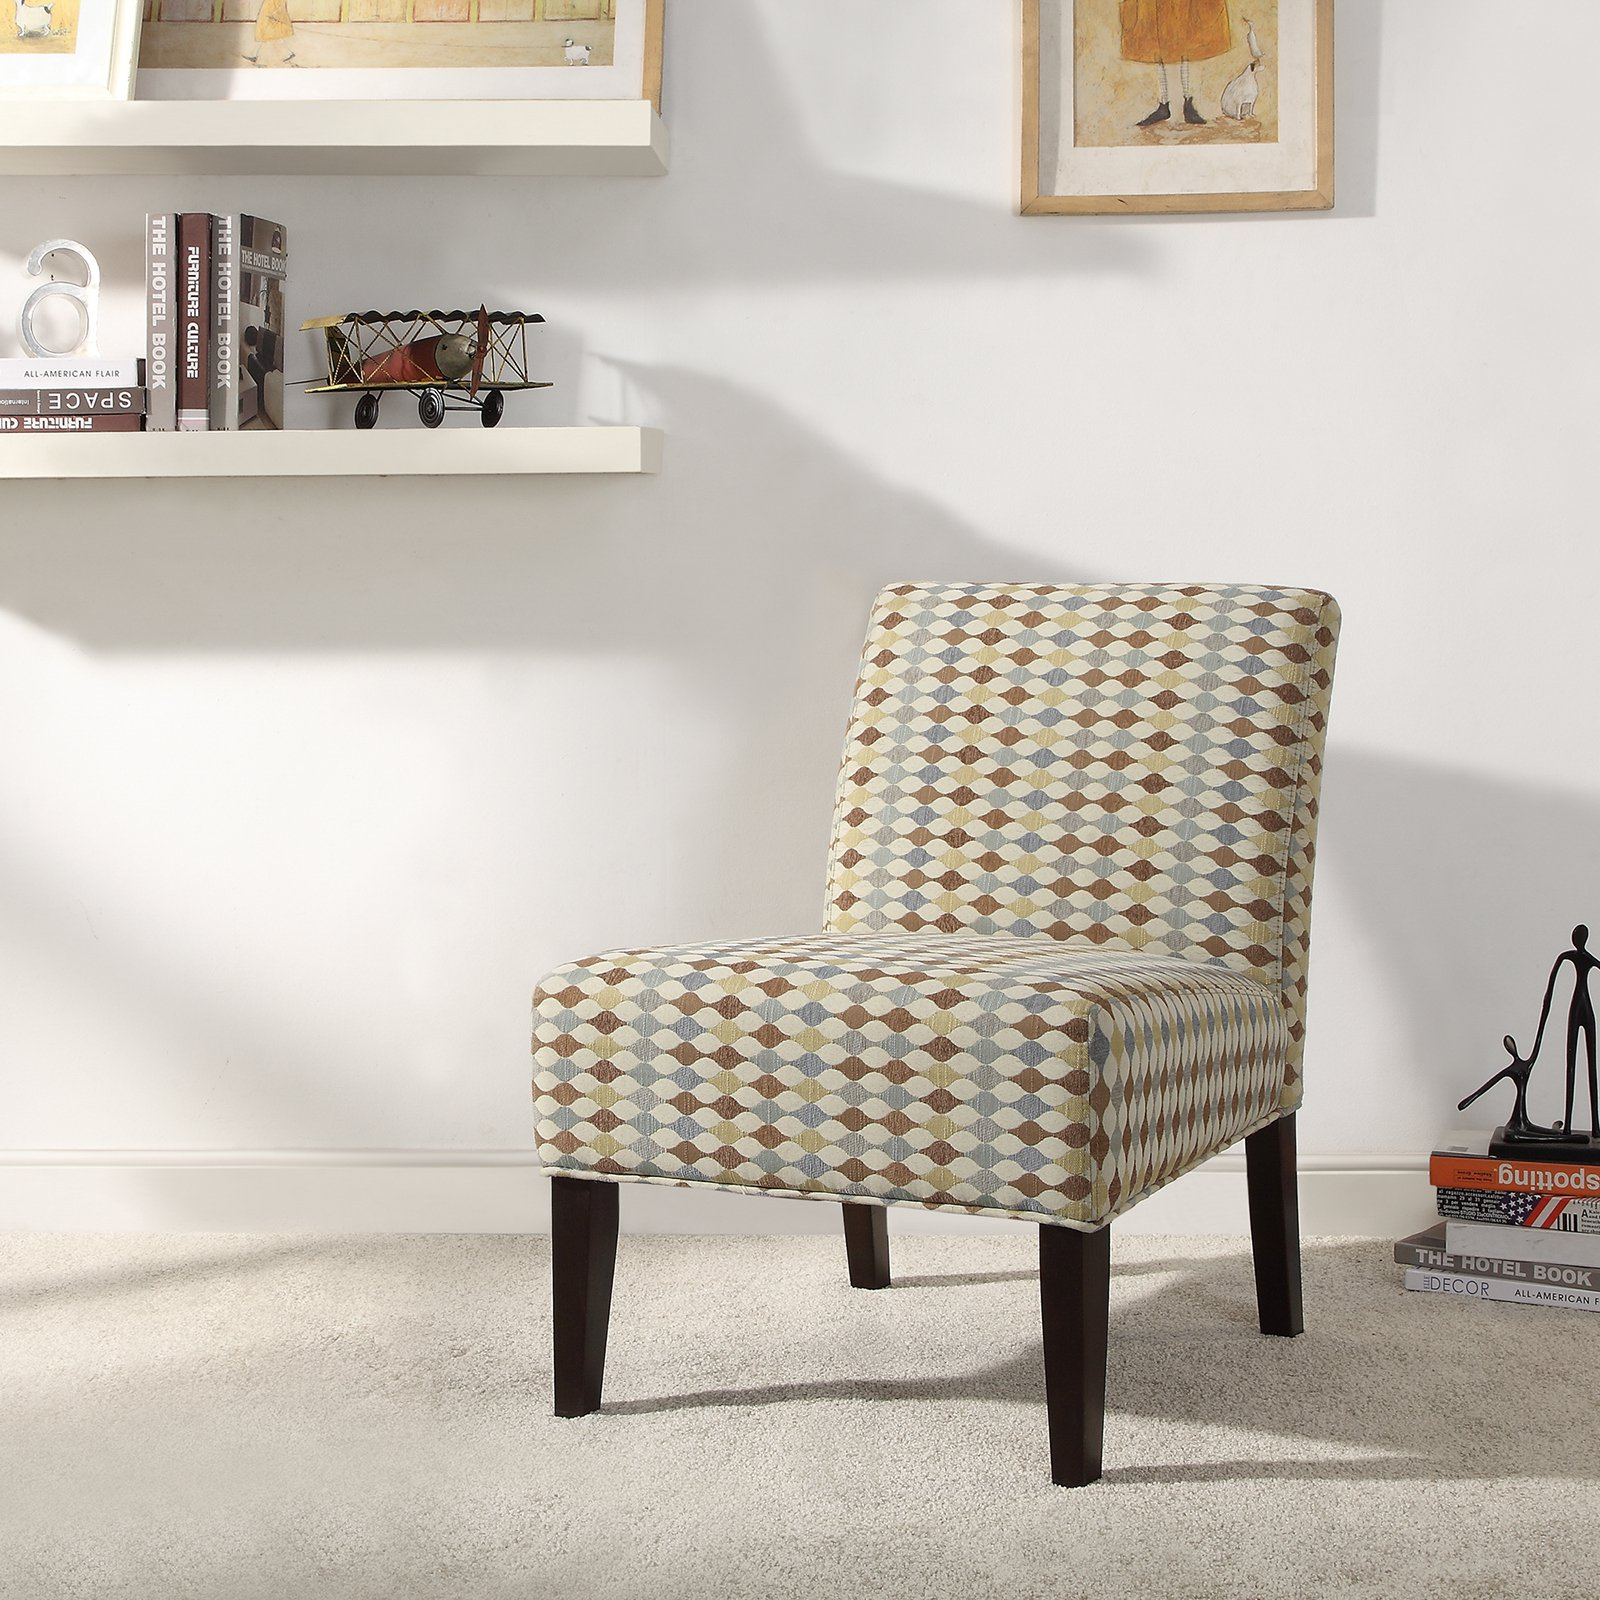 Weston Home Criss Cross Print Fabric Lounger Chair - Rich Espresso